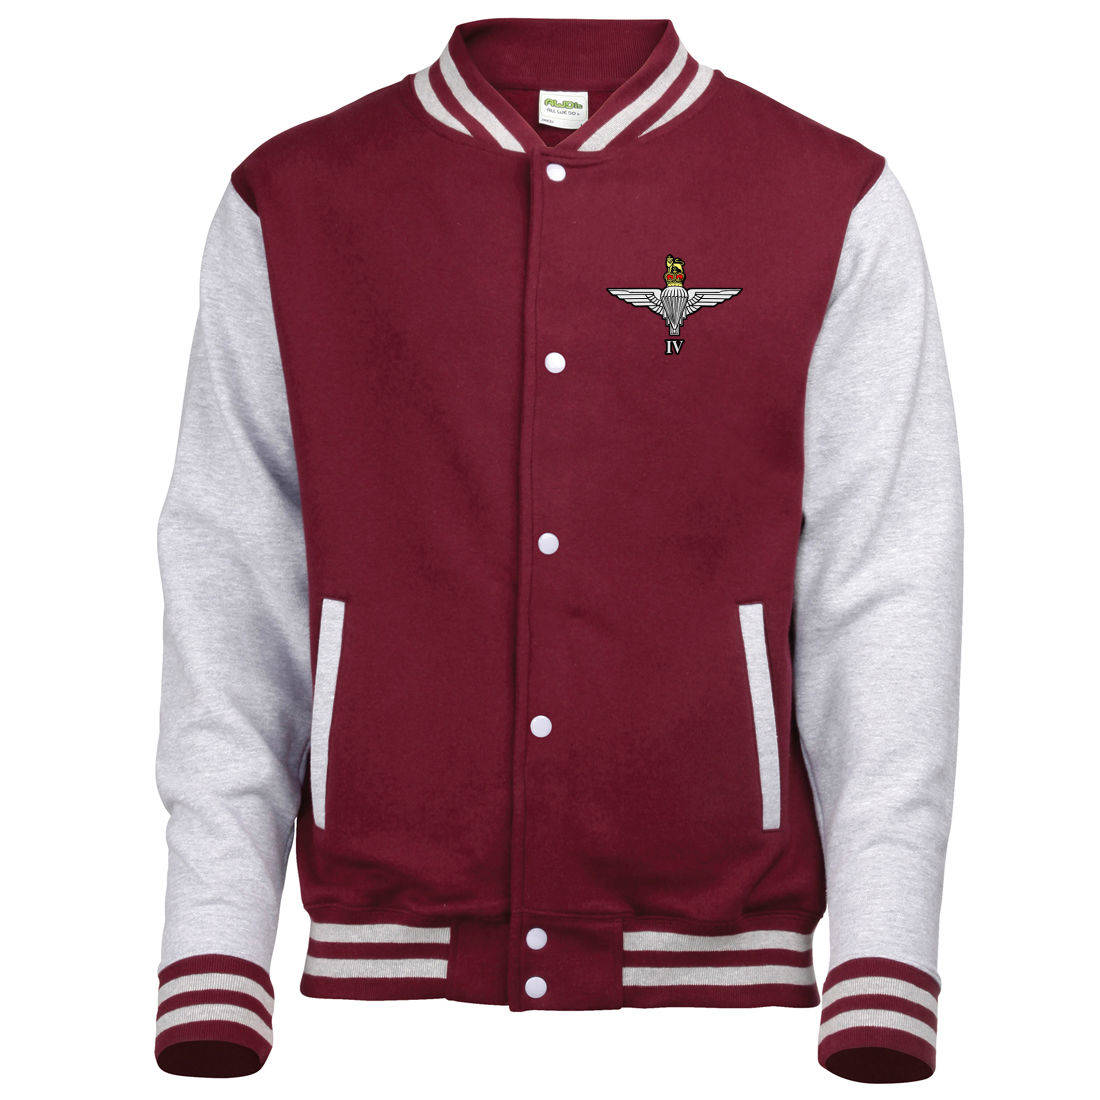 Varsity Jacket The Airborne Shop